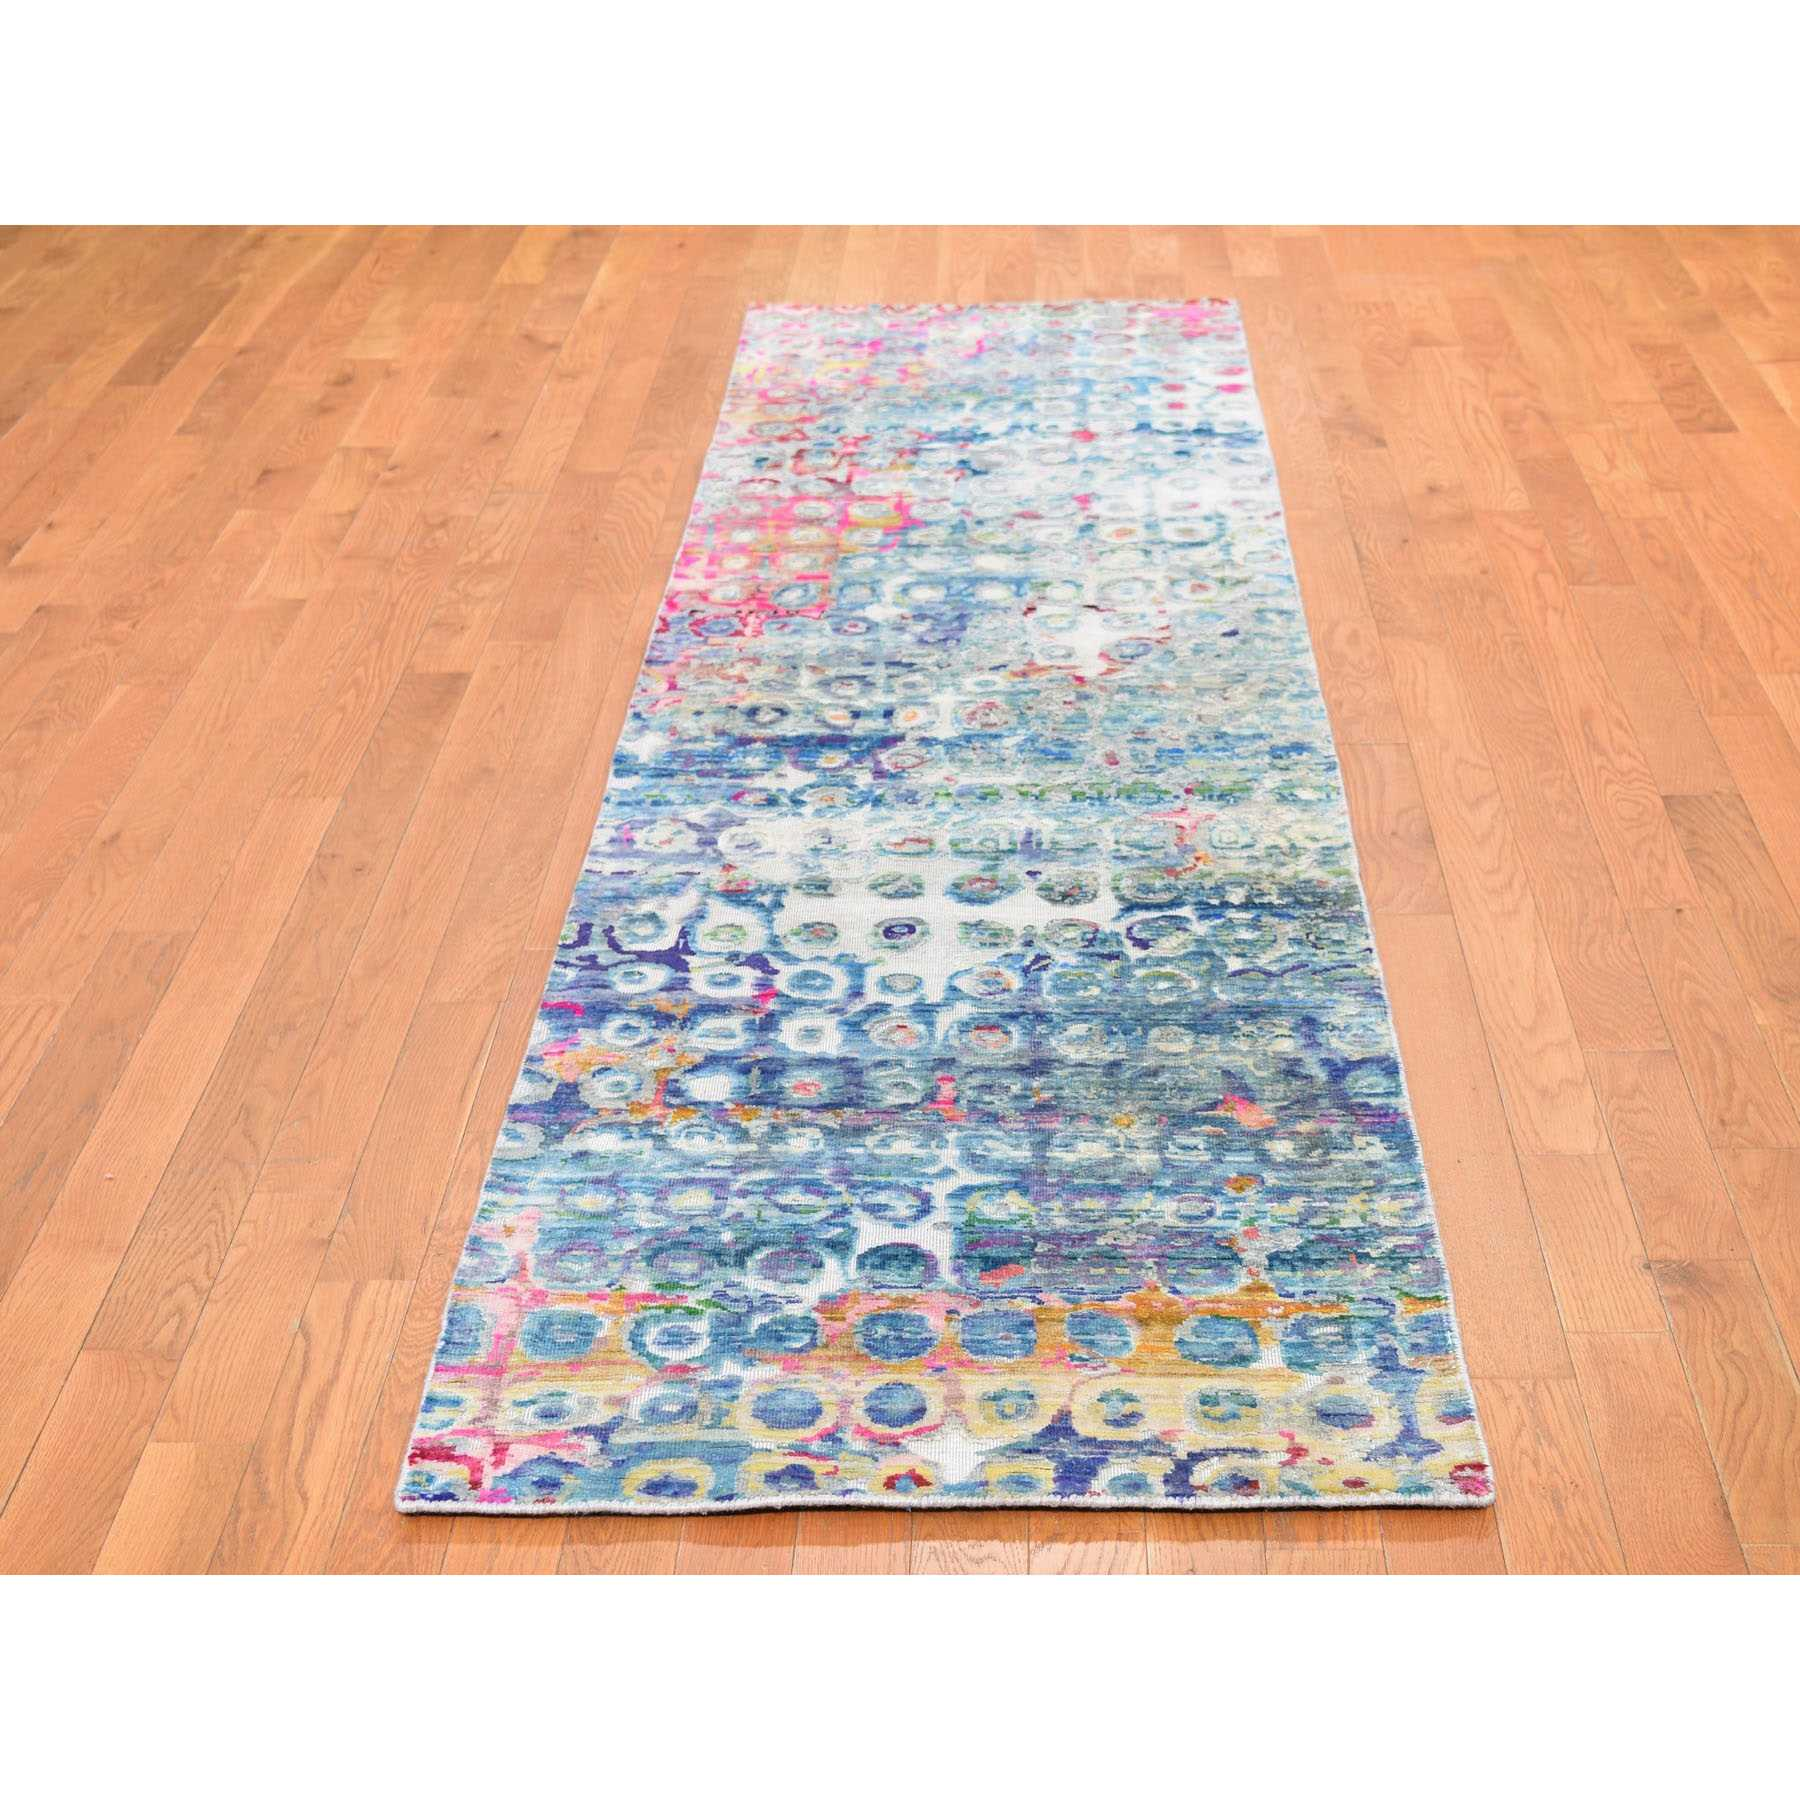 Modern-and-Contemporary-Hand-Knotted-Rug-236830